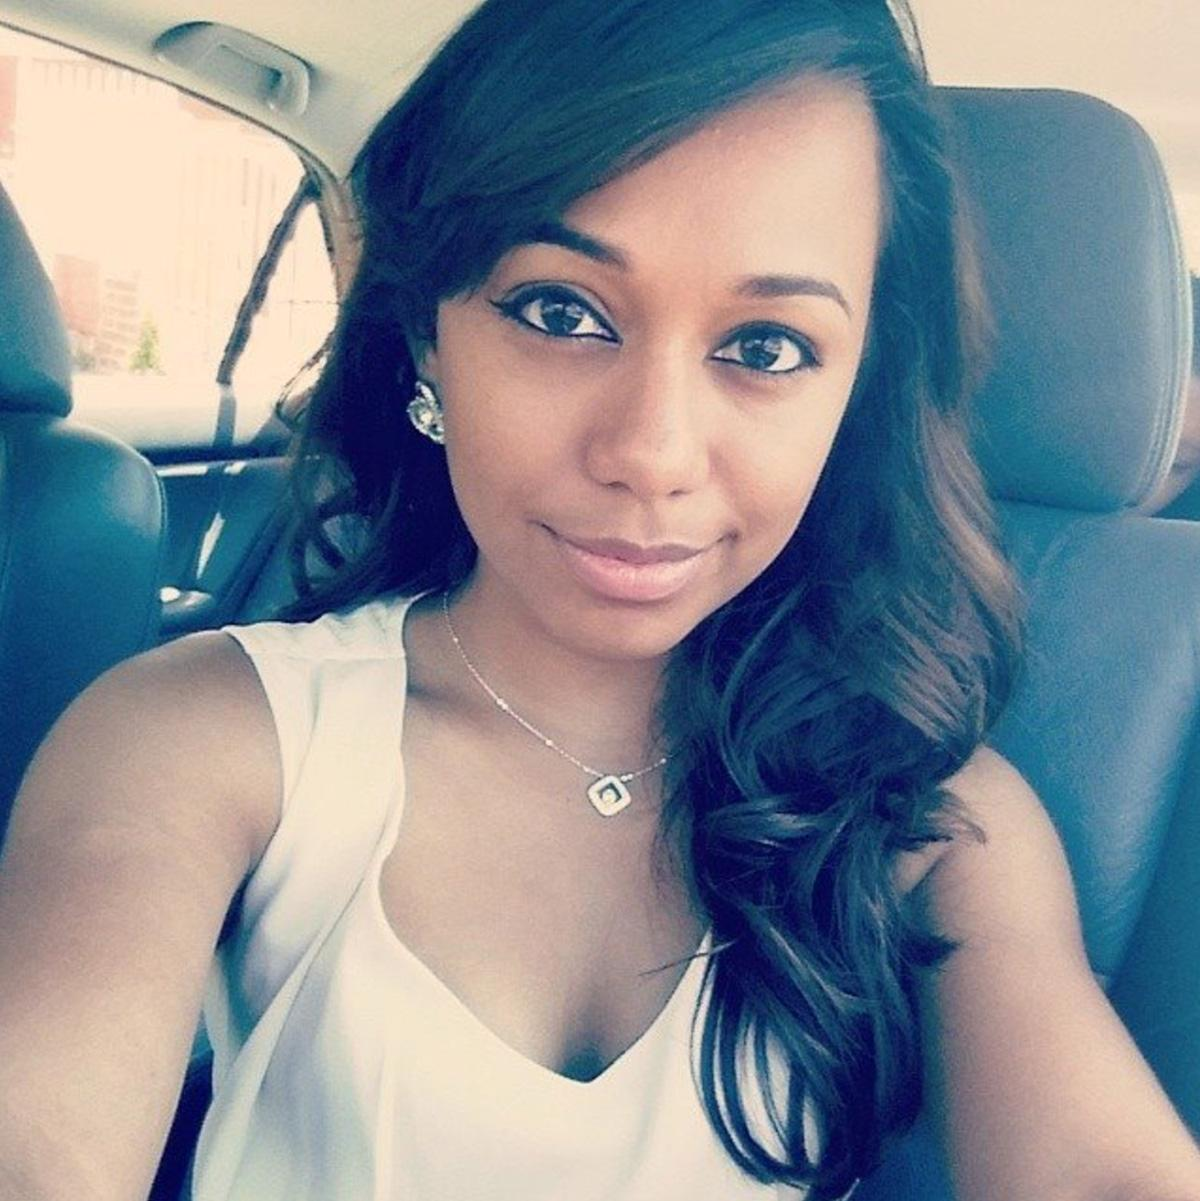 Vanessa Raghubar died in a drunk driving accident in NYC